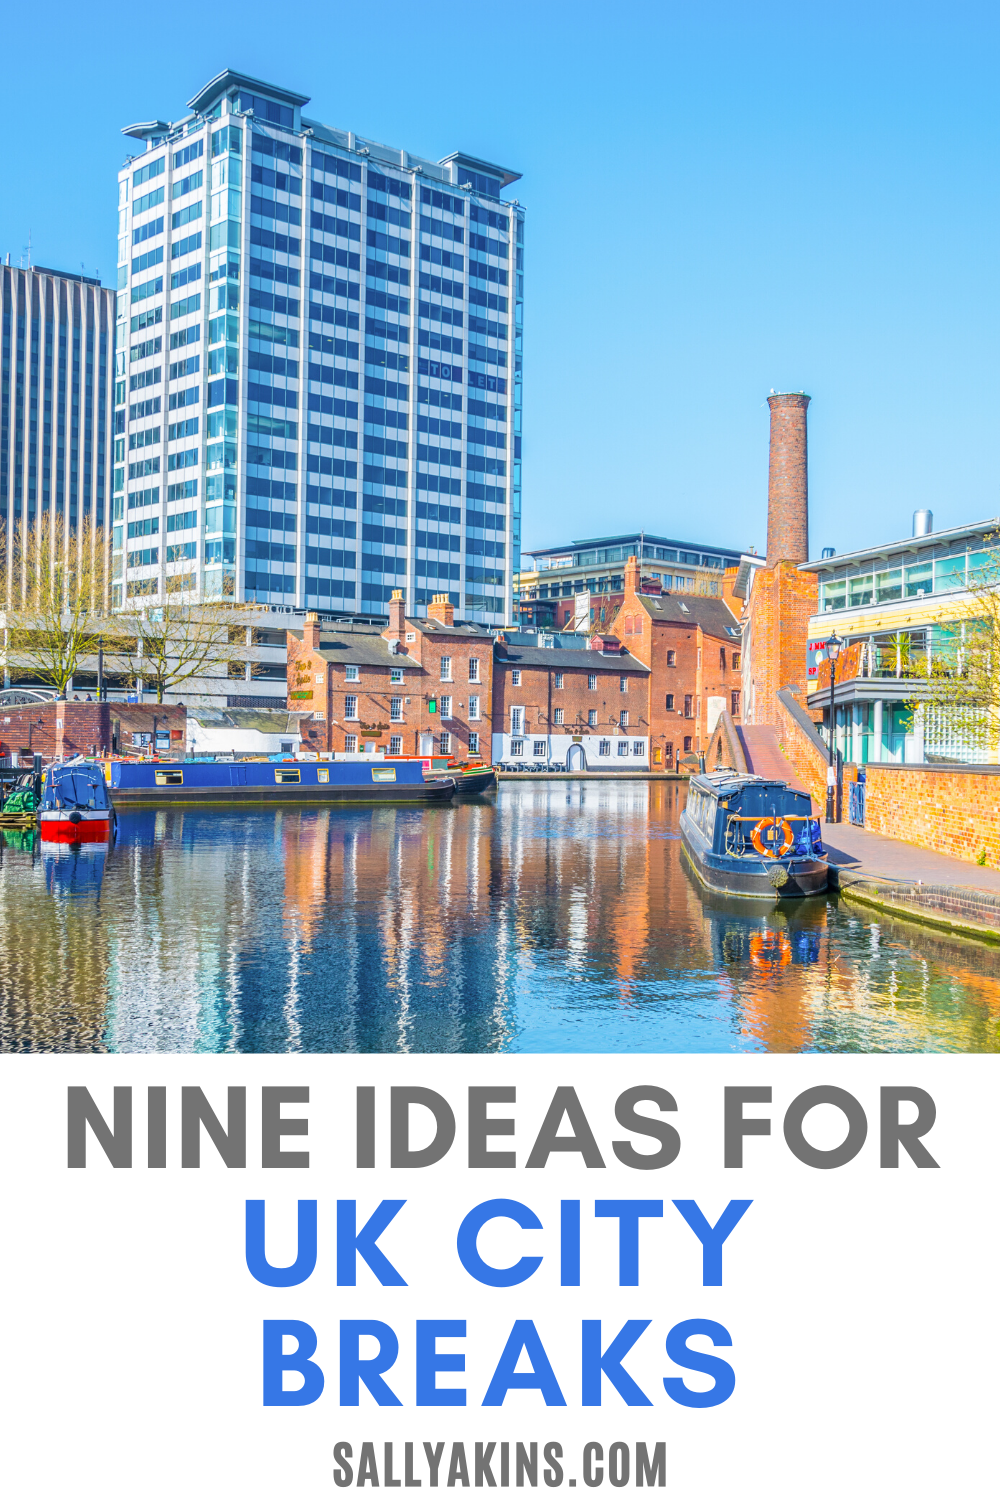 Nine Uk City Breaks For 2020 City Break Short City Breaks City